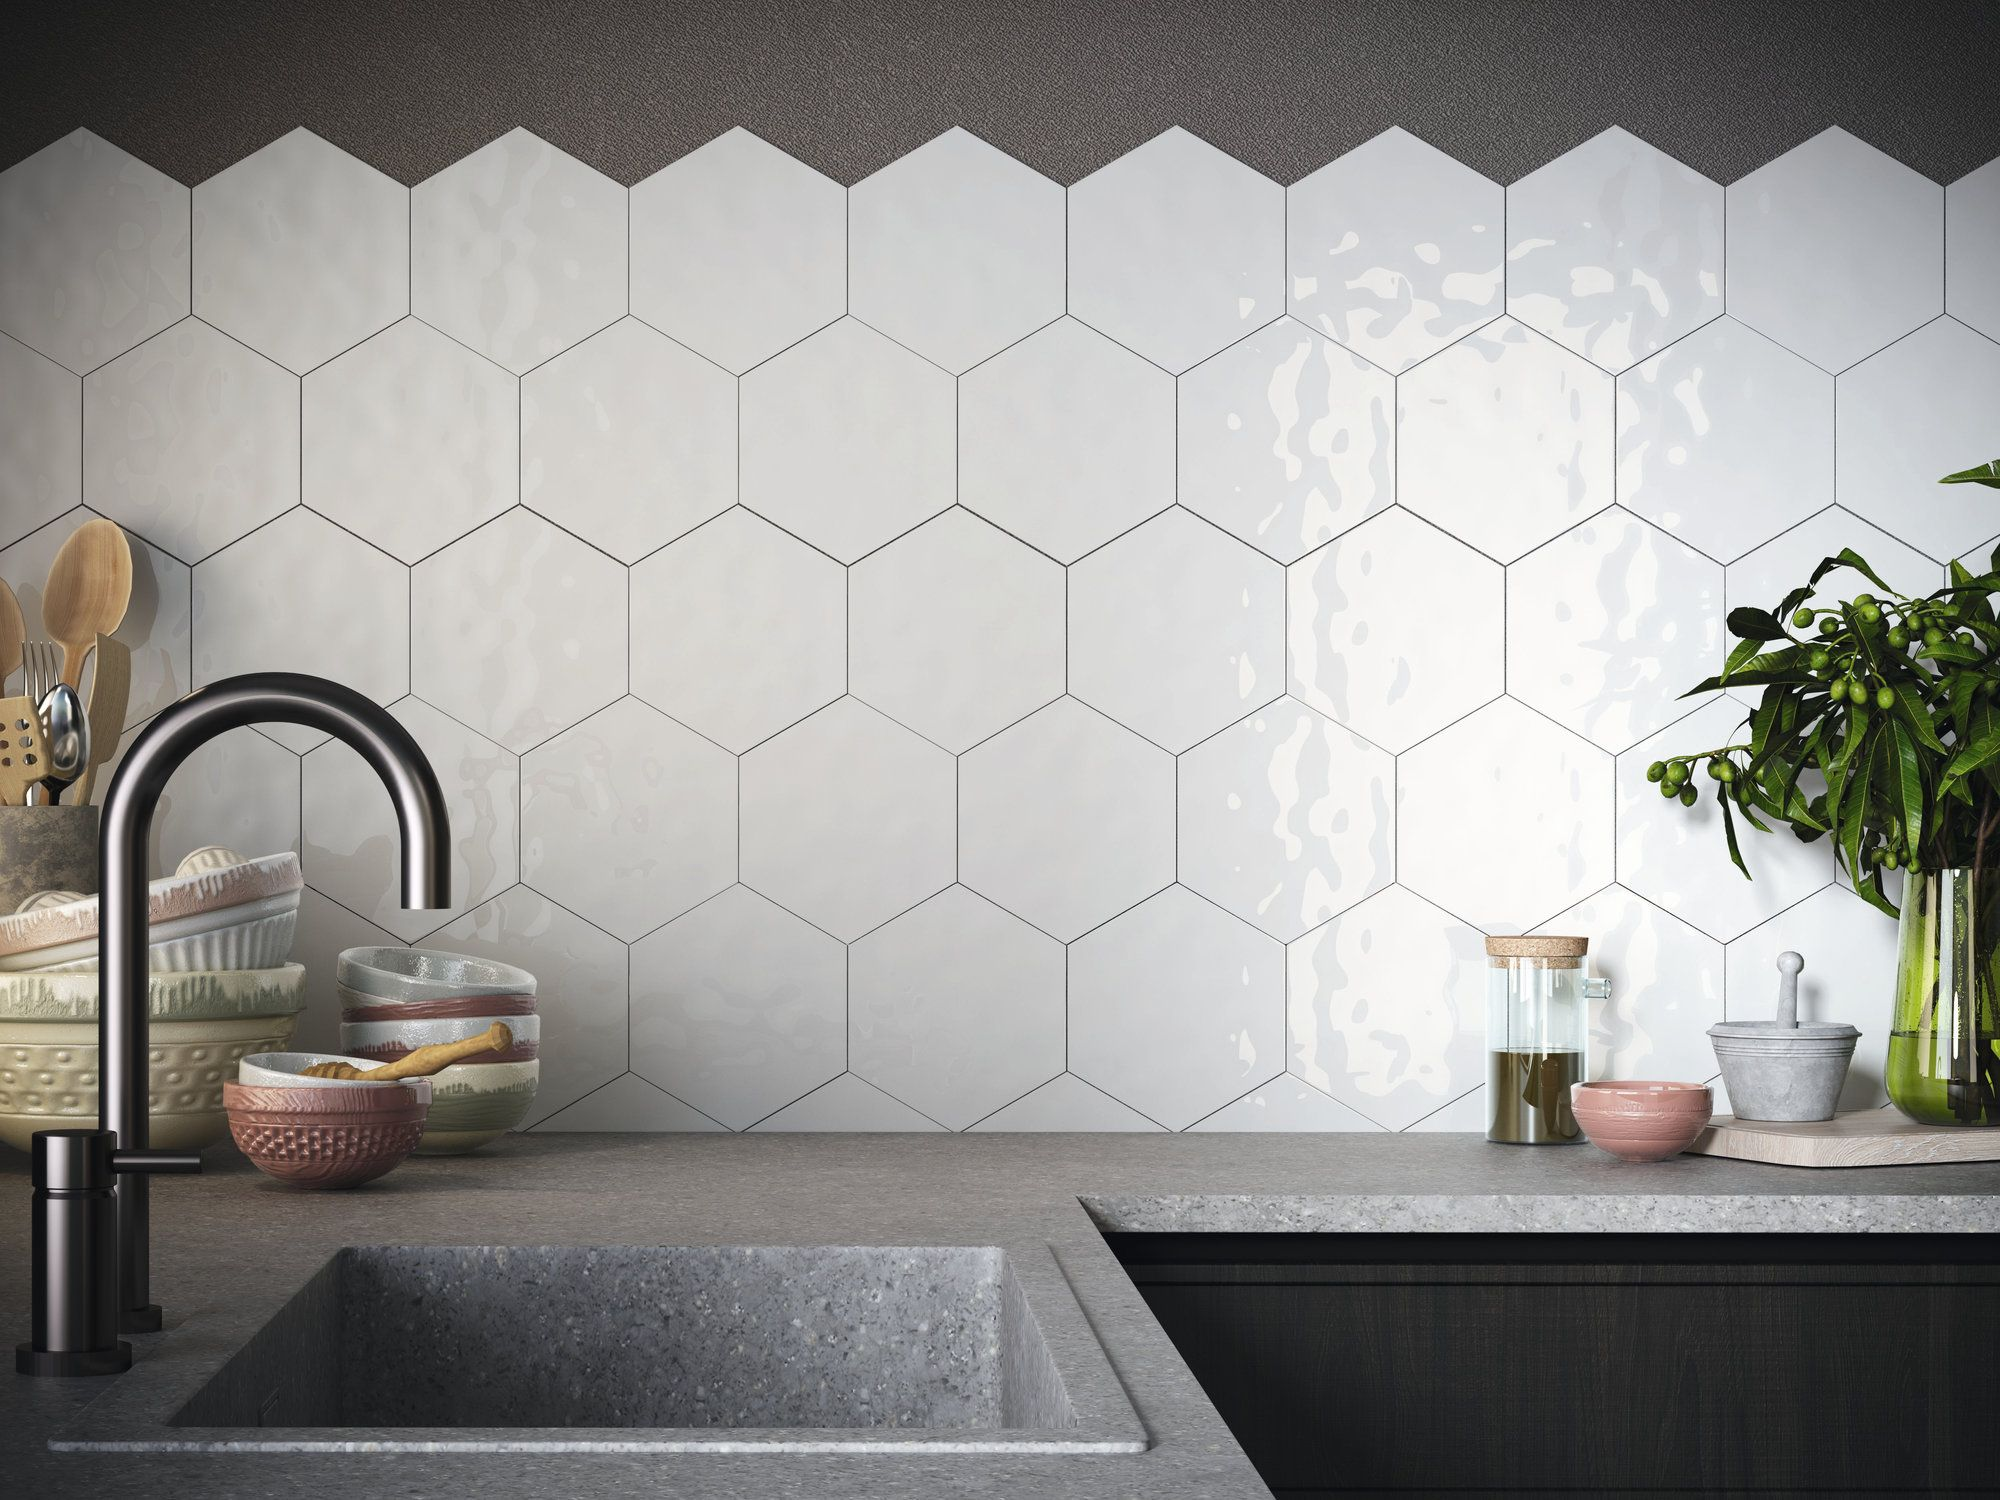 Ape Rustic 7x8 Hexagon Tile In White High Gloss Finish With A Hand Made Edge Beautiful Bathroom Designs Kitchen Room Design Kitchen Facelift